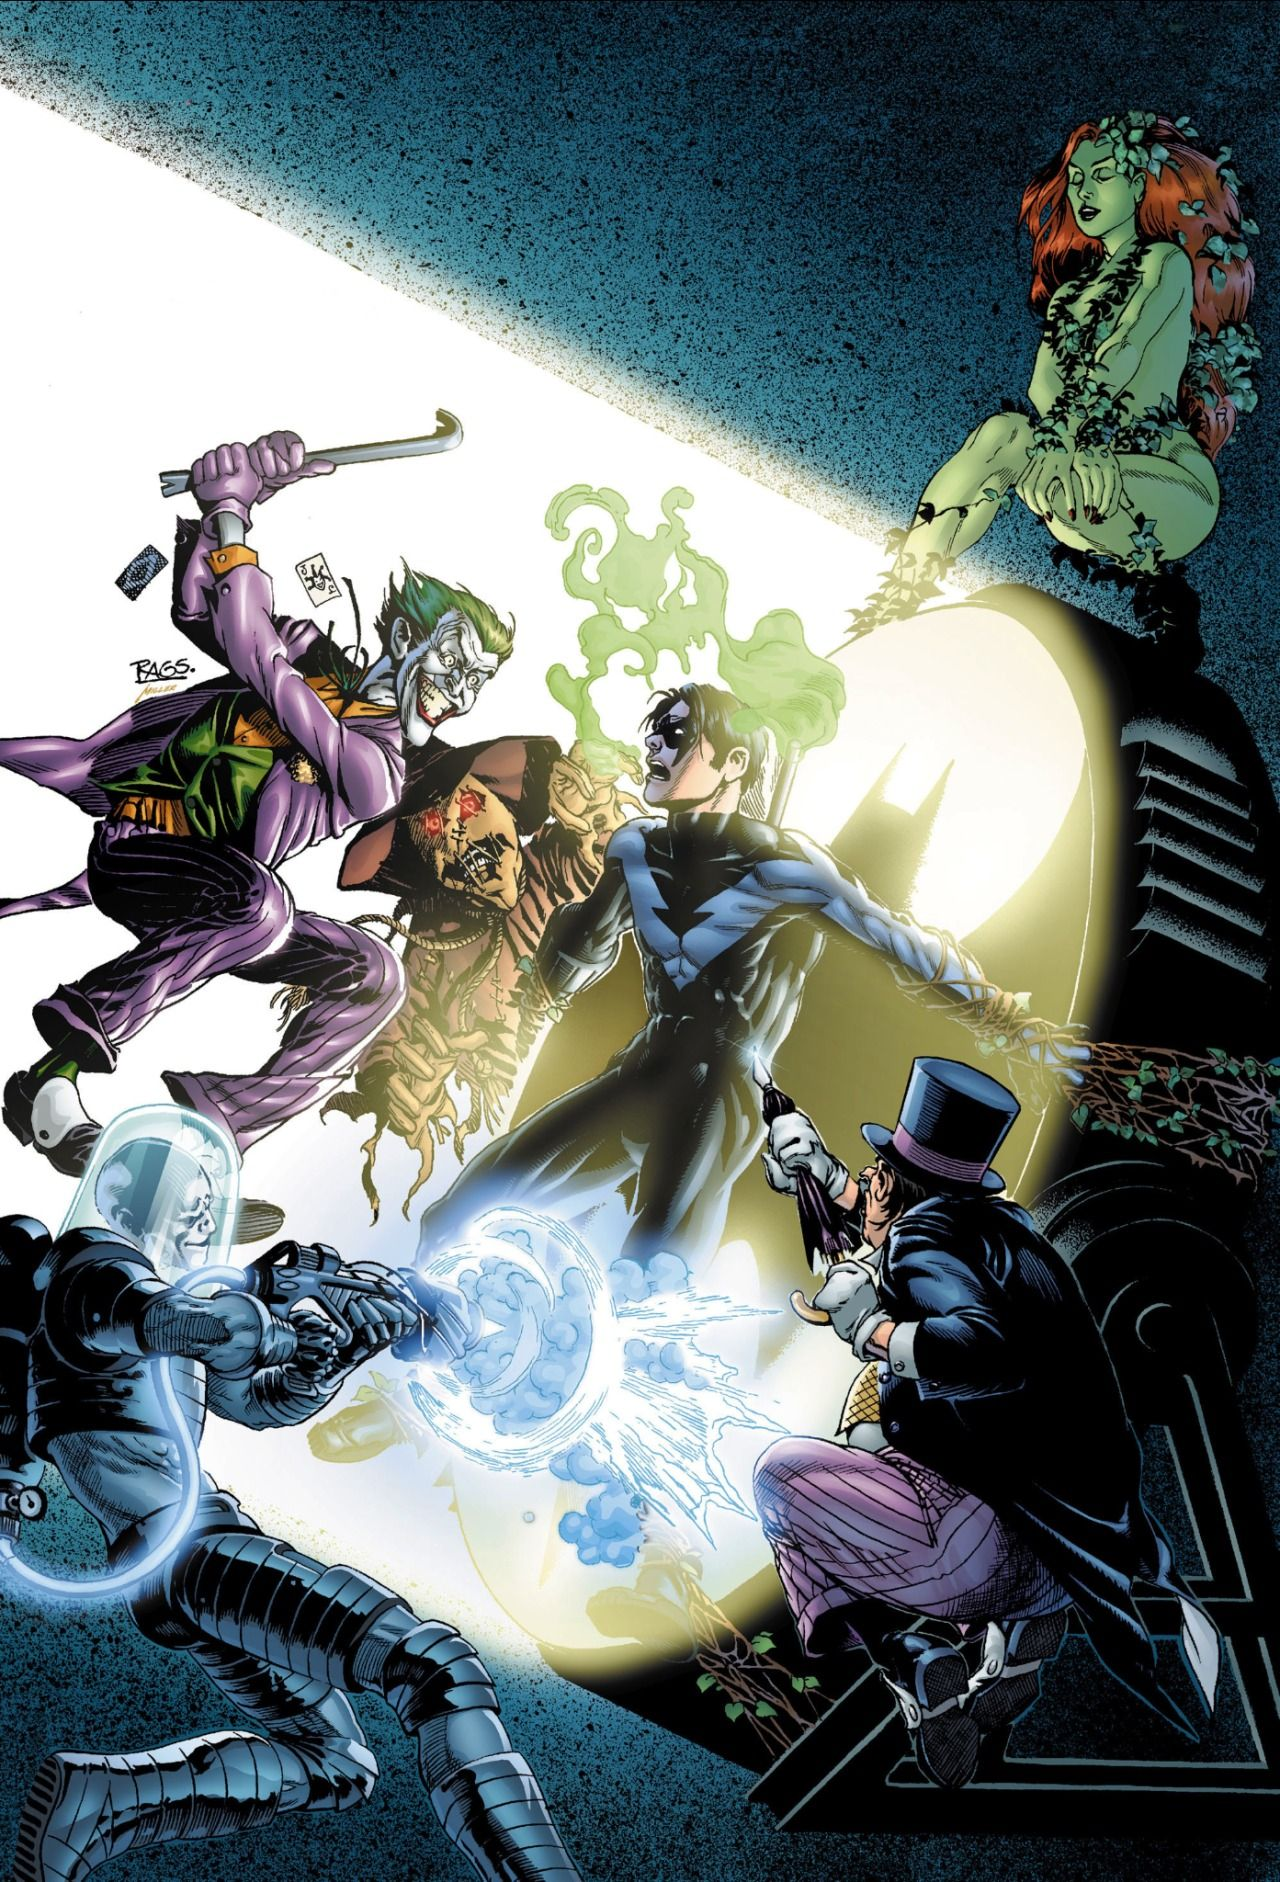 Nightwing Vs Gotham Villains Rags Morales With Images